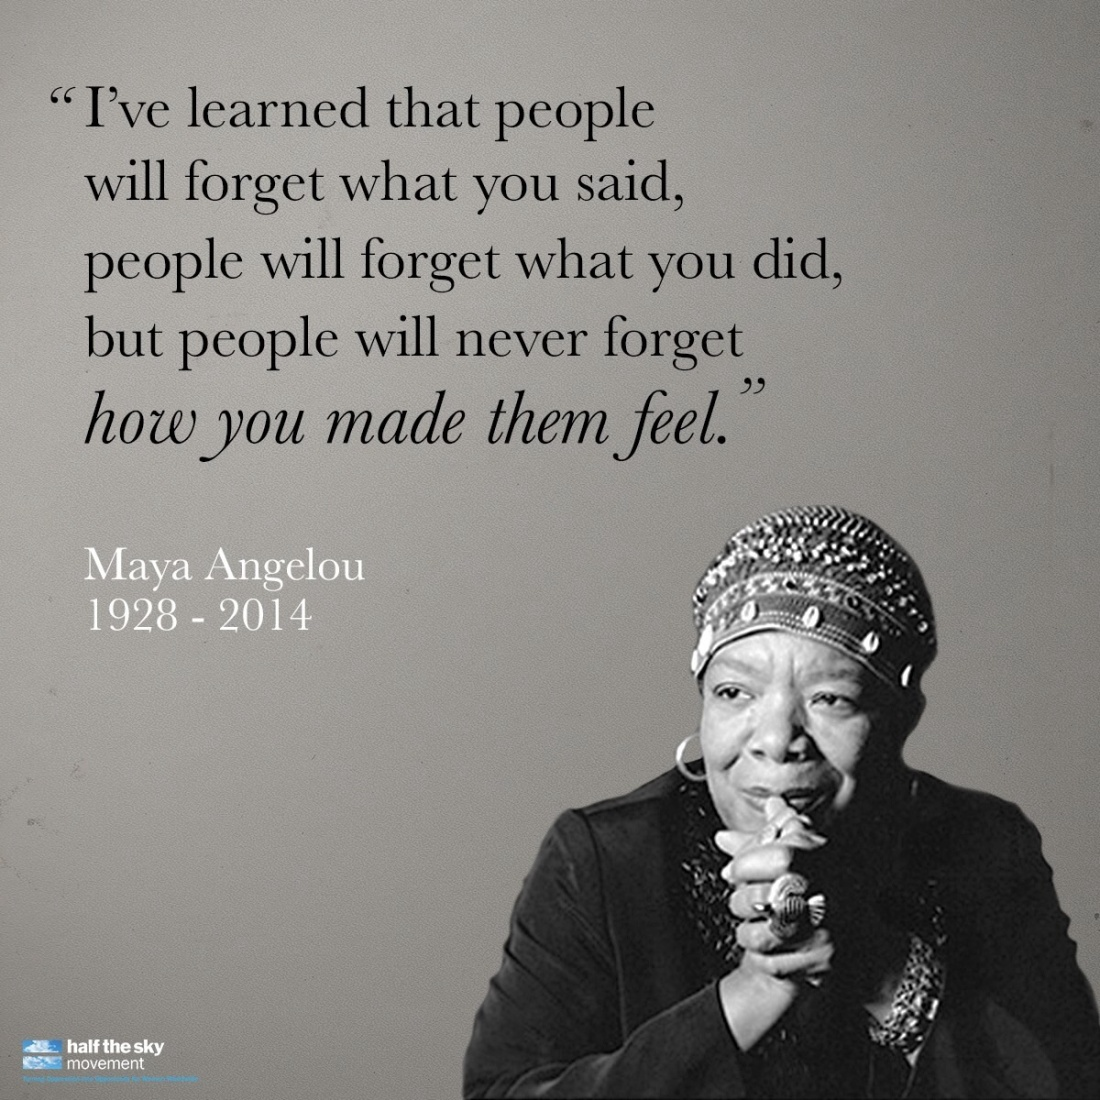 'I've learned that people will forget what you said, people will forget what you did, but people will never forget how you made them feel. - Maya Angelou, with picture of the feminist and civil rights activist, author of I Know Why The Caged Bird Sings, inspirational quote